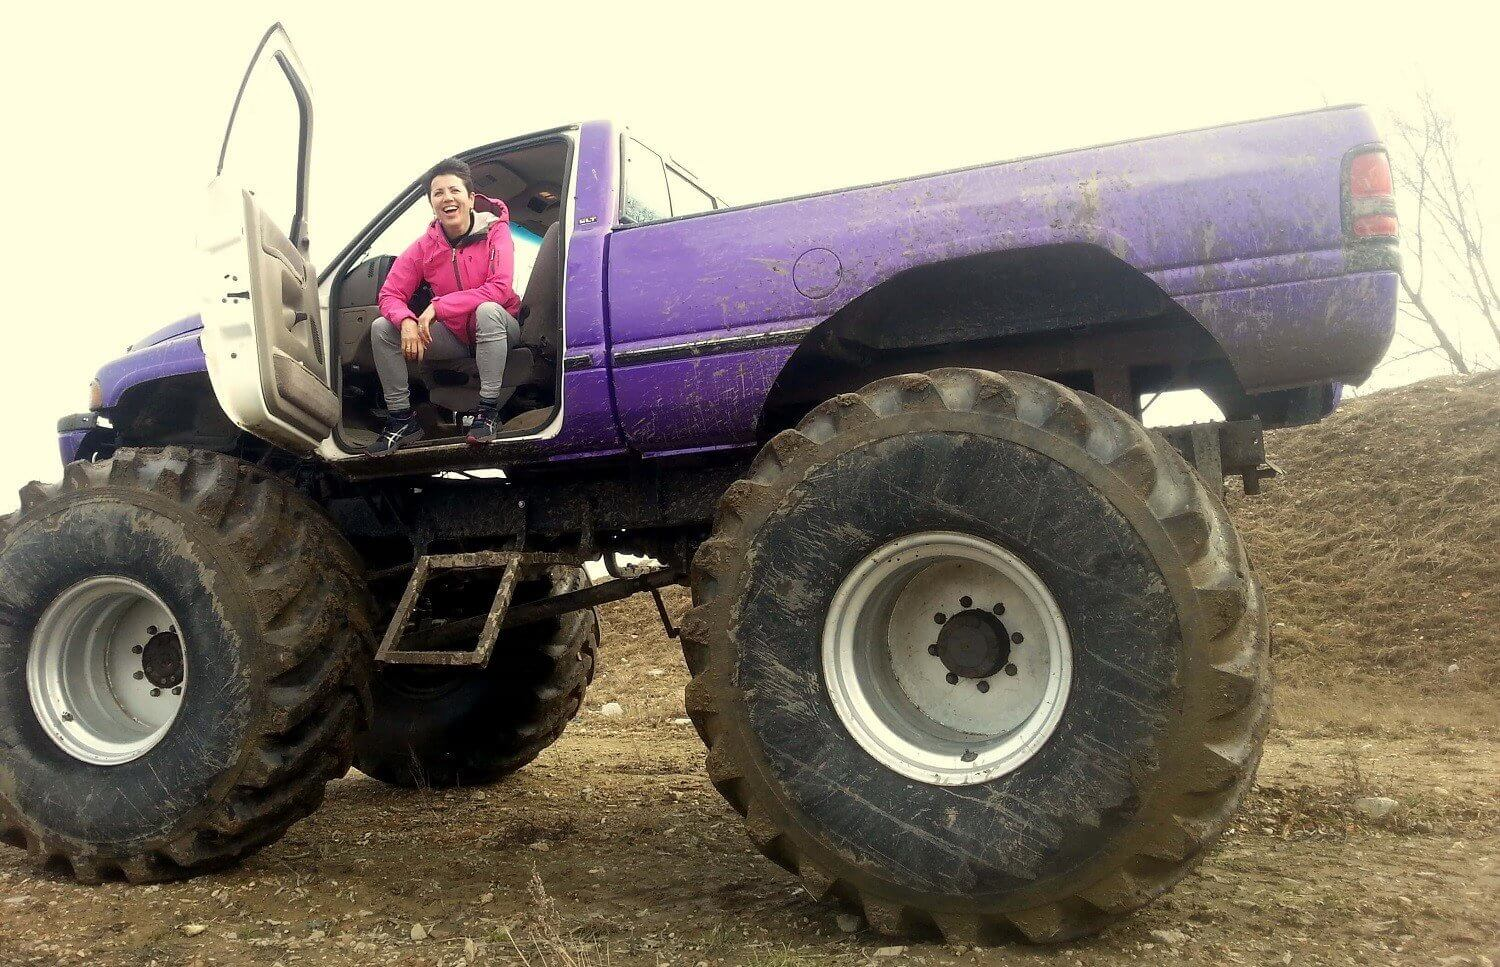 Monster Truck na torze off-road